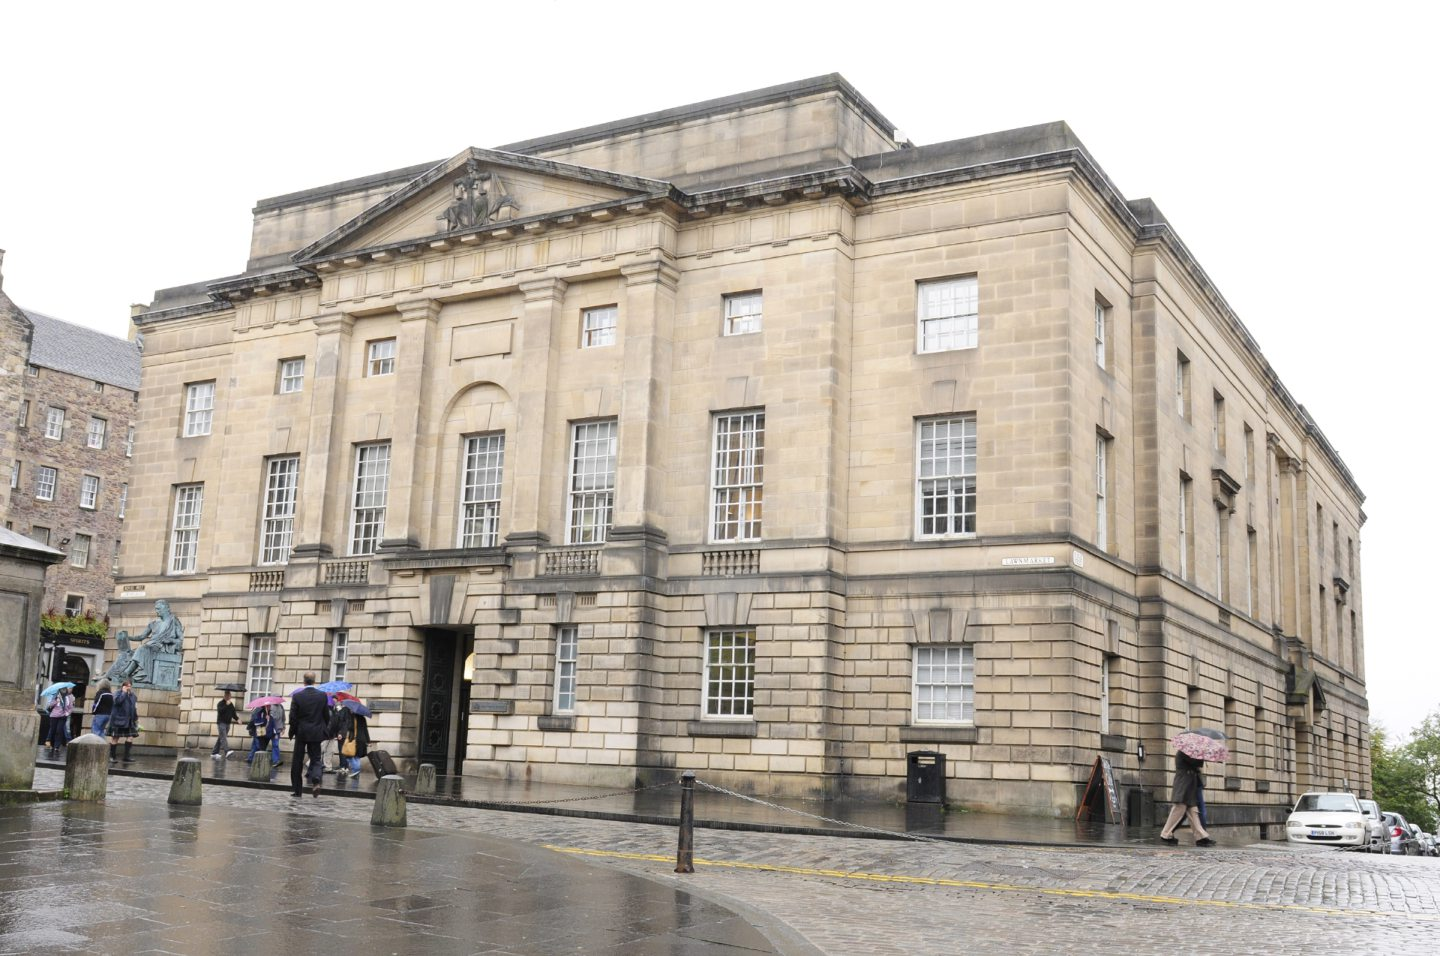 Man who raped 12-year-old girl in Dundee loses appeal to be released – The Courier